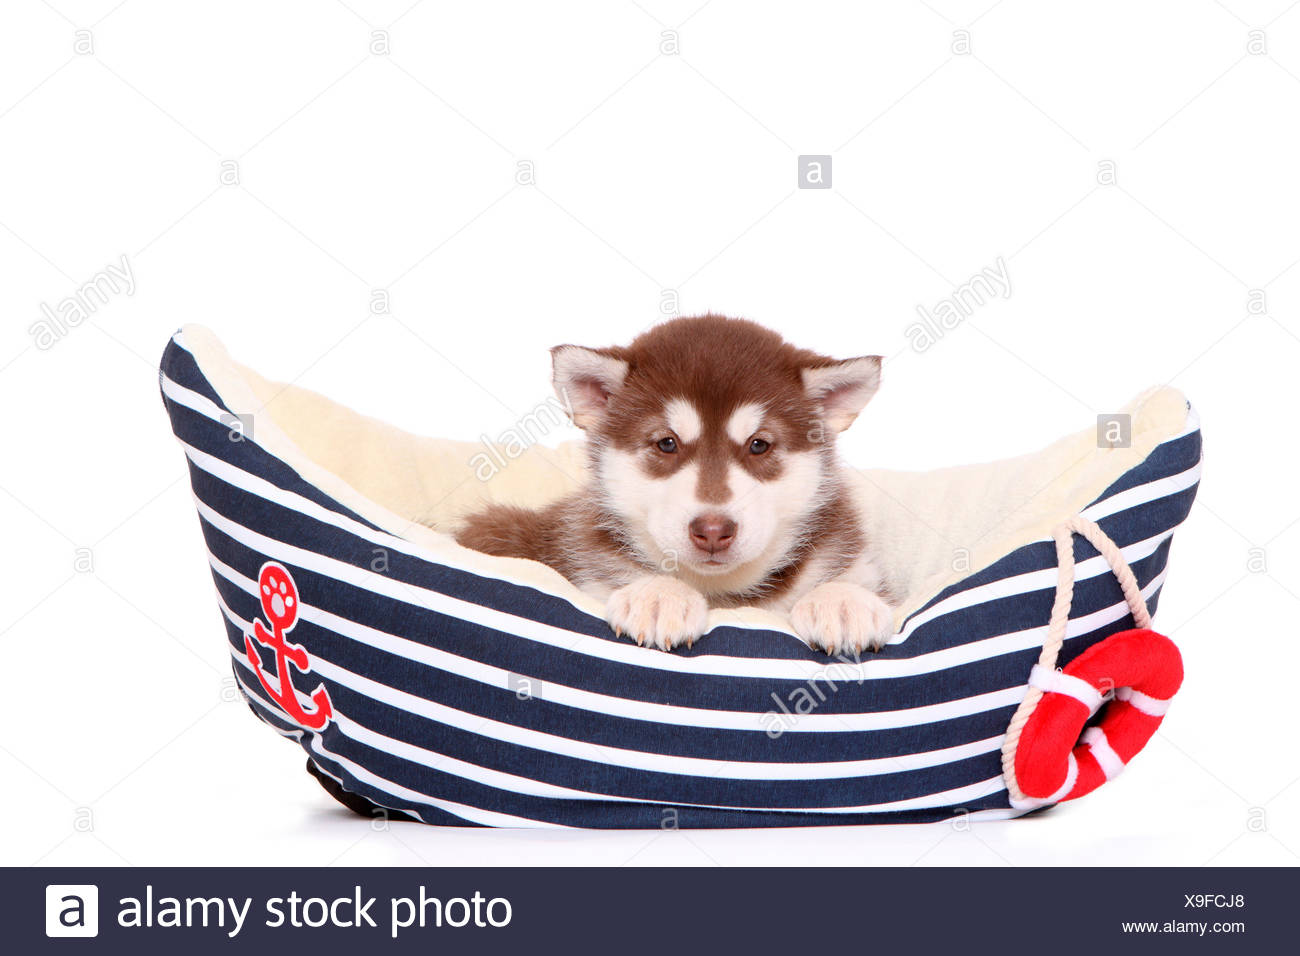 Alaskan Malamute. Puppy (6 weeks old) in a pet bed shaped like a boat. Studio picture against a white background. Germany Stock Photo